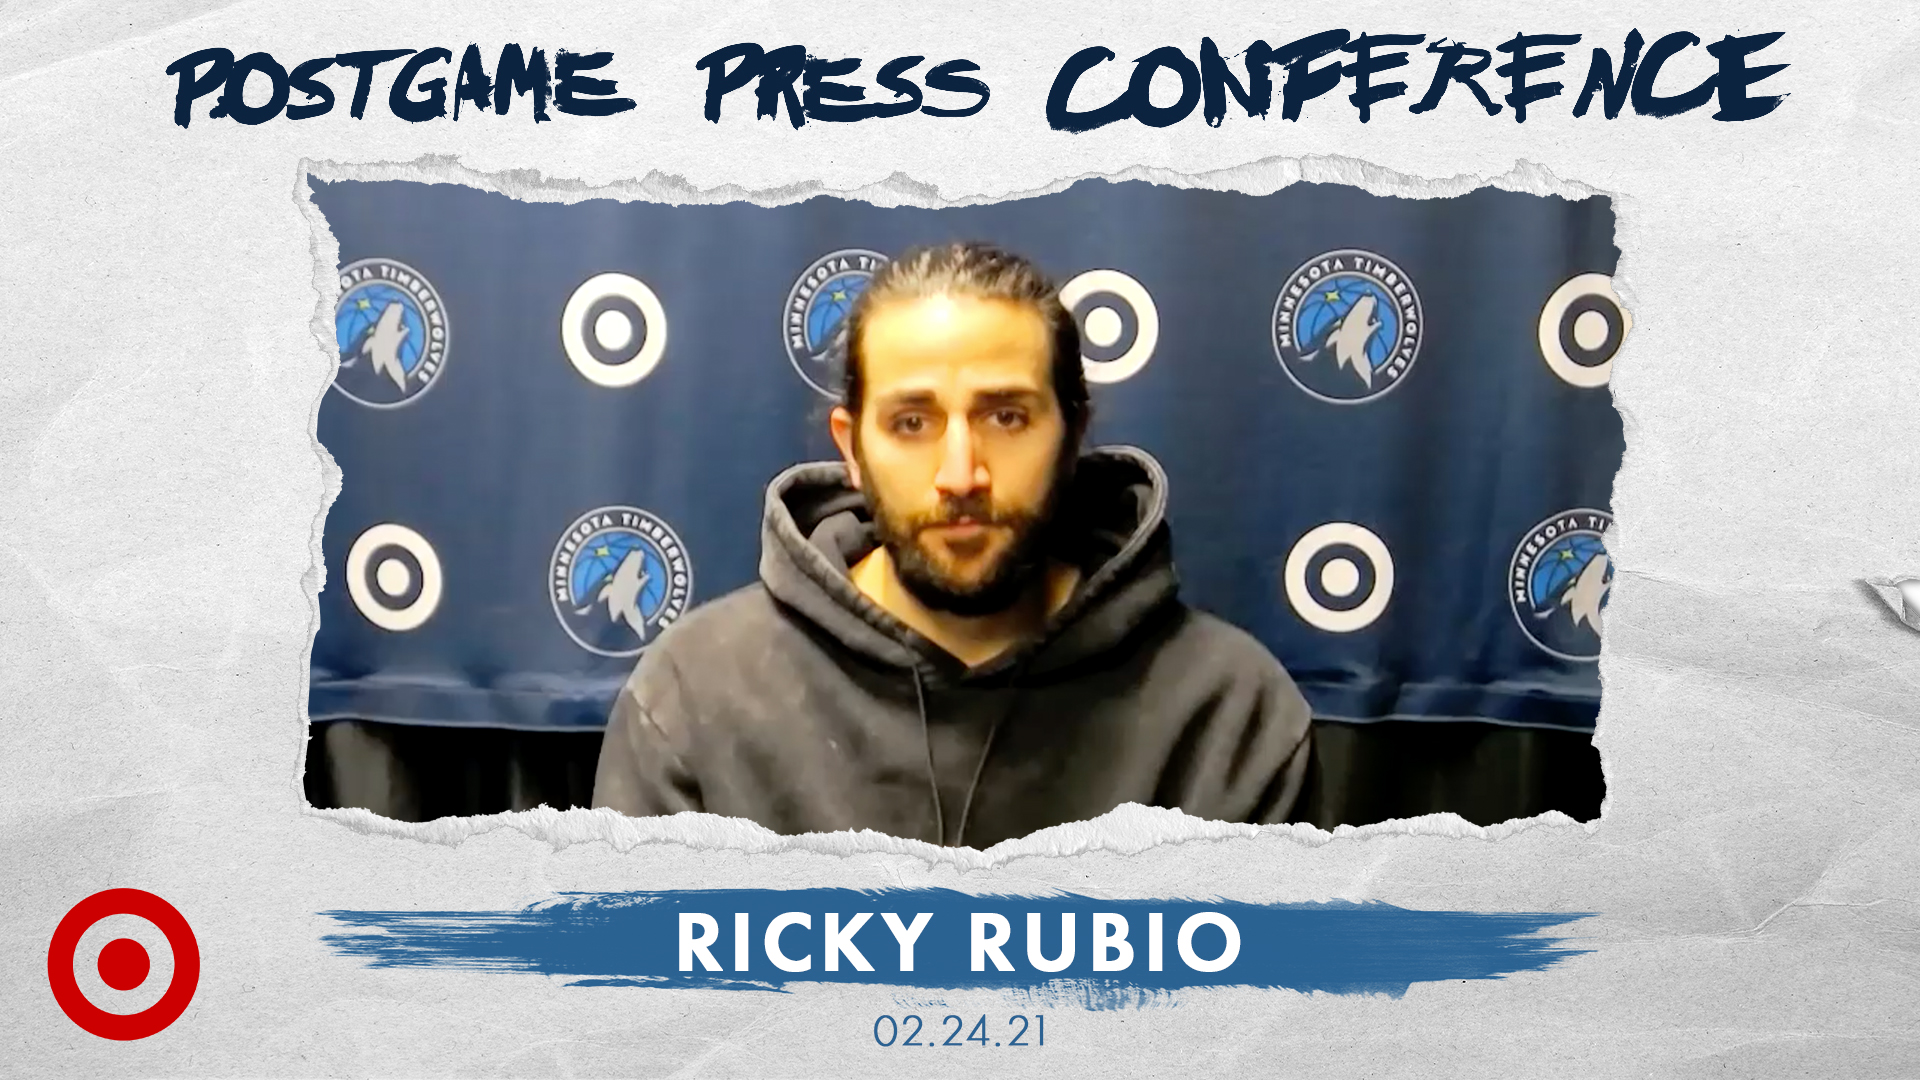 Ricky Rubio Postgame Press Conference - February 24, 2021